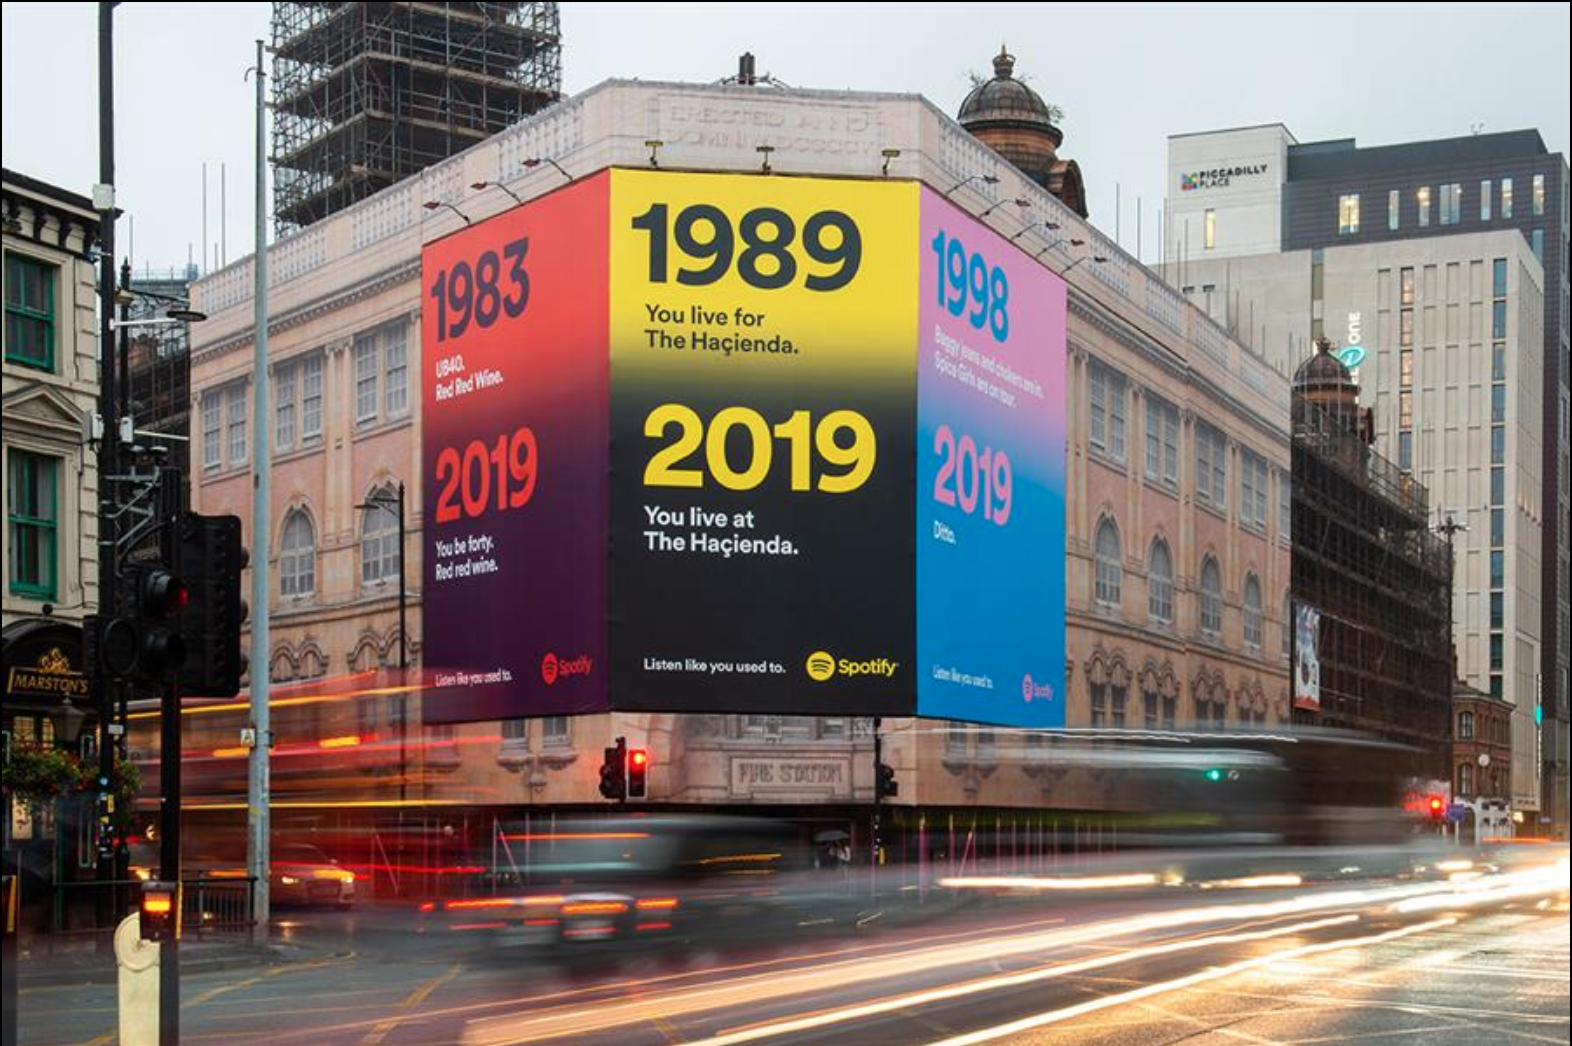 Spotify listen like you used to creative ad campaign